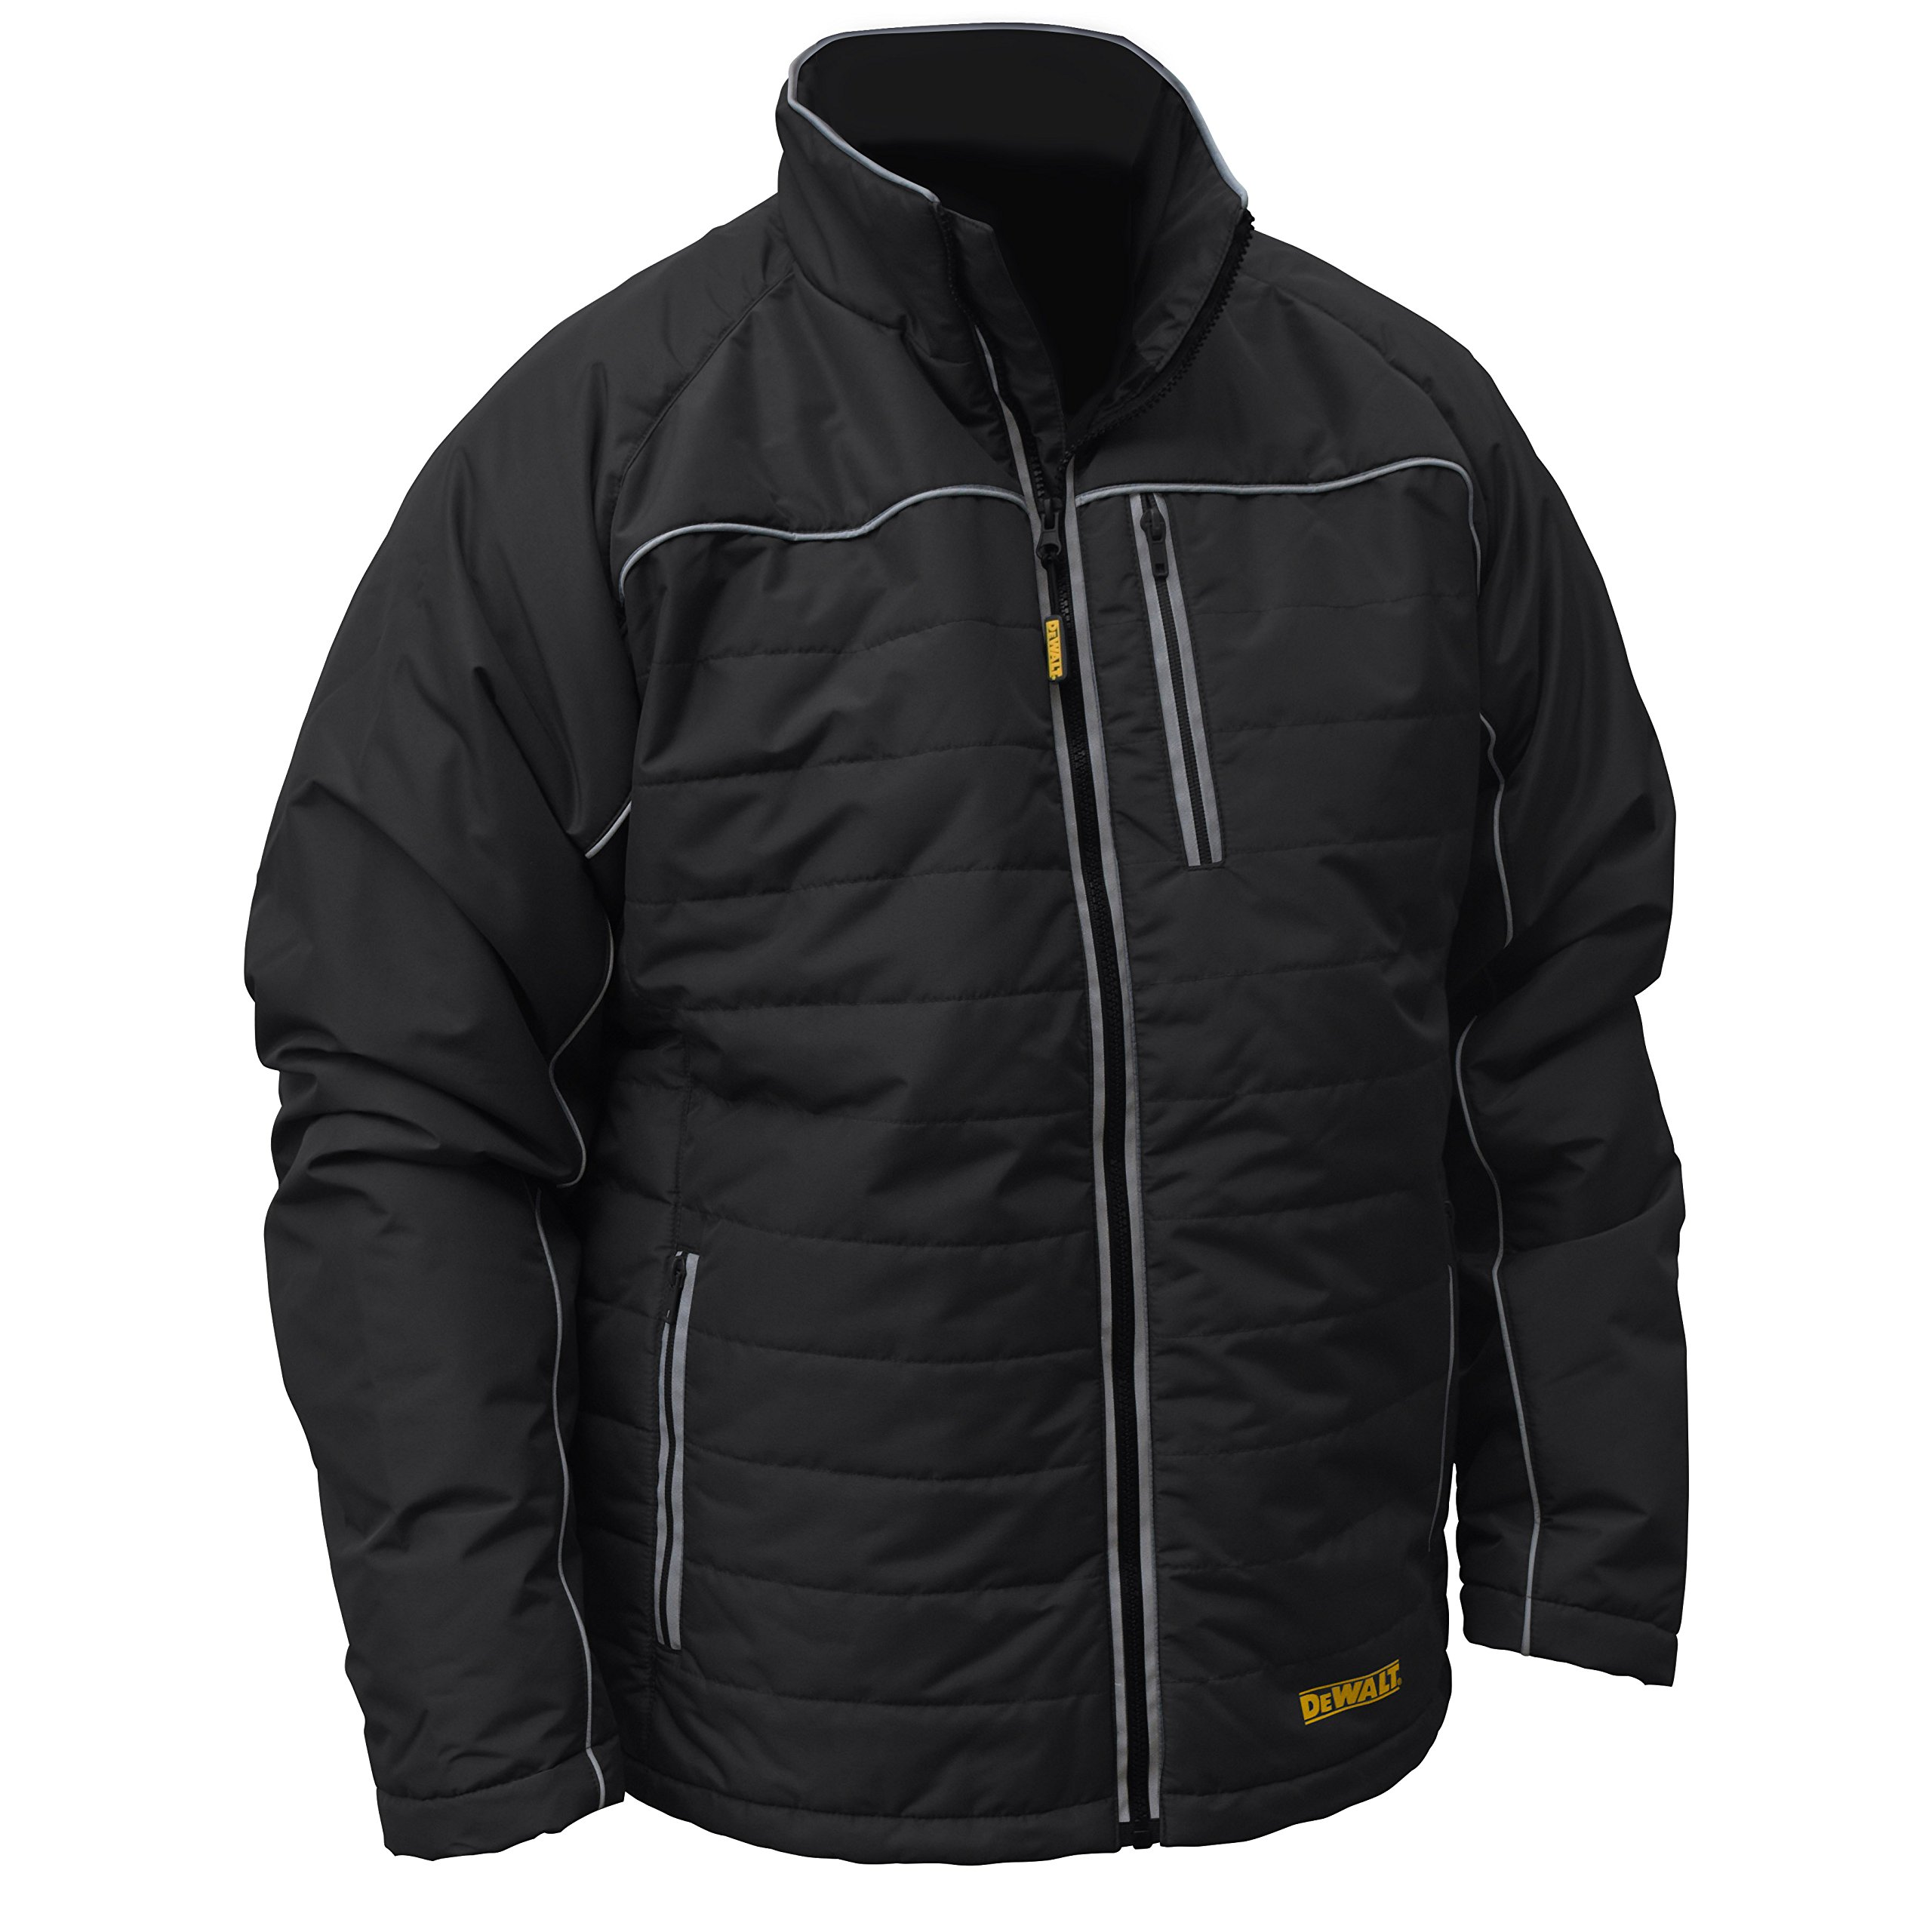 DEWALT DCHJ075B-2X Quilted Heated Work Jacket, 2X-Large, Black